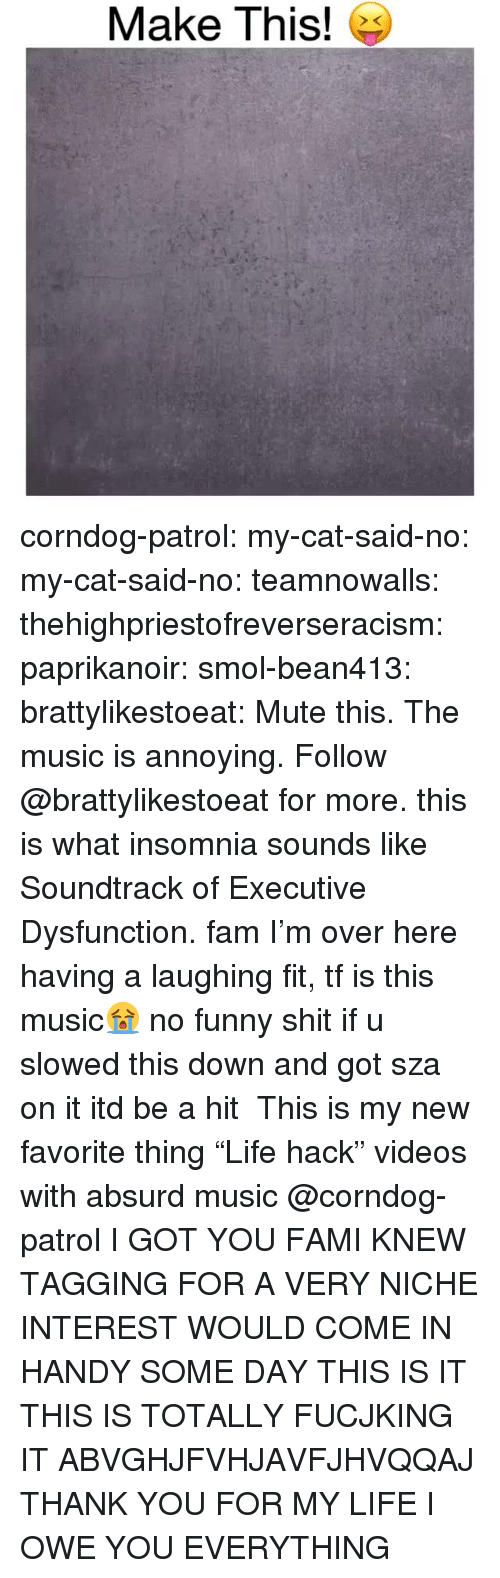 """Fam, Funny, and Life: Make This! e corndog-patrol: my-cat-said-no:  my-cat-said-no:  teamnowalls:  thehighpriestofreverseracism:  paprikanoir:  smol-bean413:   brattylikestoeat:  Mute this. The music is annoying. Follow @brattylikestoeat for more.  this is what insomnia sounds like   Soundtrack of Executive Dysfunction.  fam I'm over here having a laughing fit, tf is this music😭  no funny shit if u slowed this down and got sza on it itd be a hit   This is my new favorite thing """"Life hack"""" videos with absurd music   @corndog-patrol I GOT YOU FAMI KNEW TAGGING FOR A VERY NICHE INTEREST WOULD COME IN HANDY SOME DAY  THIS IS IT THIS IS TOTALLY FUCJKING IT ABVGHJFVHJAVFJHVQQAJ THANK YOU FOR MY LIFE I OWE YOU EVERYTHING"""